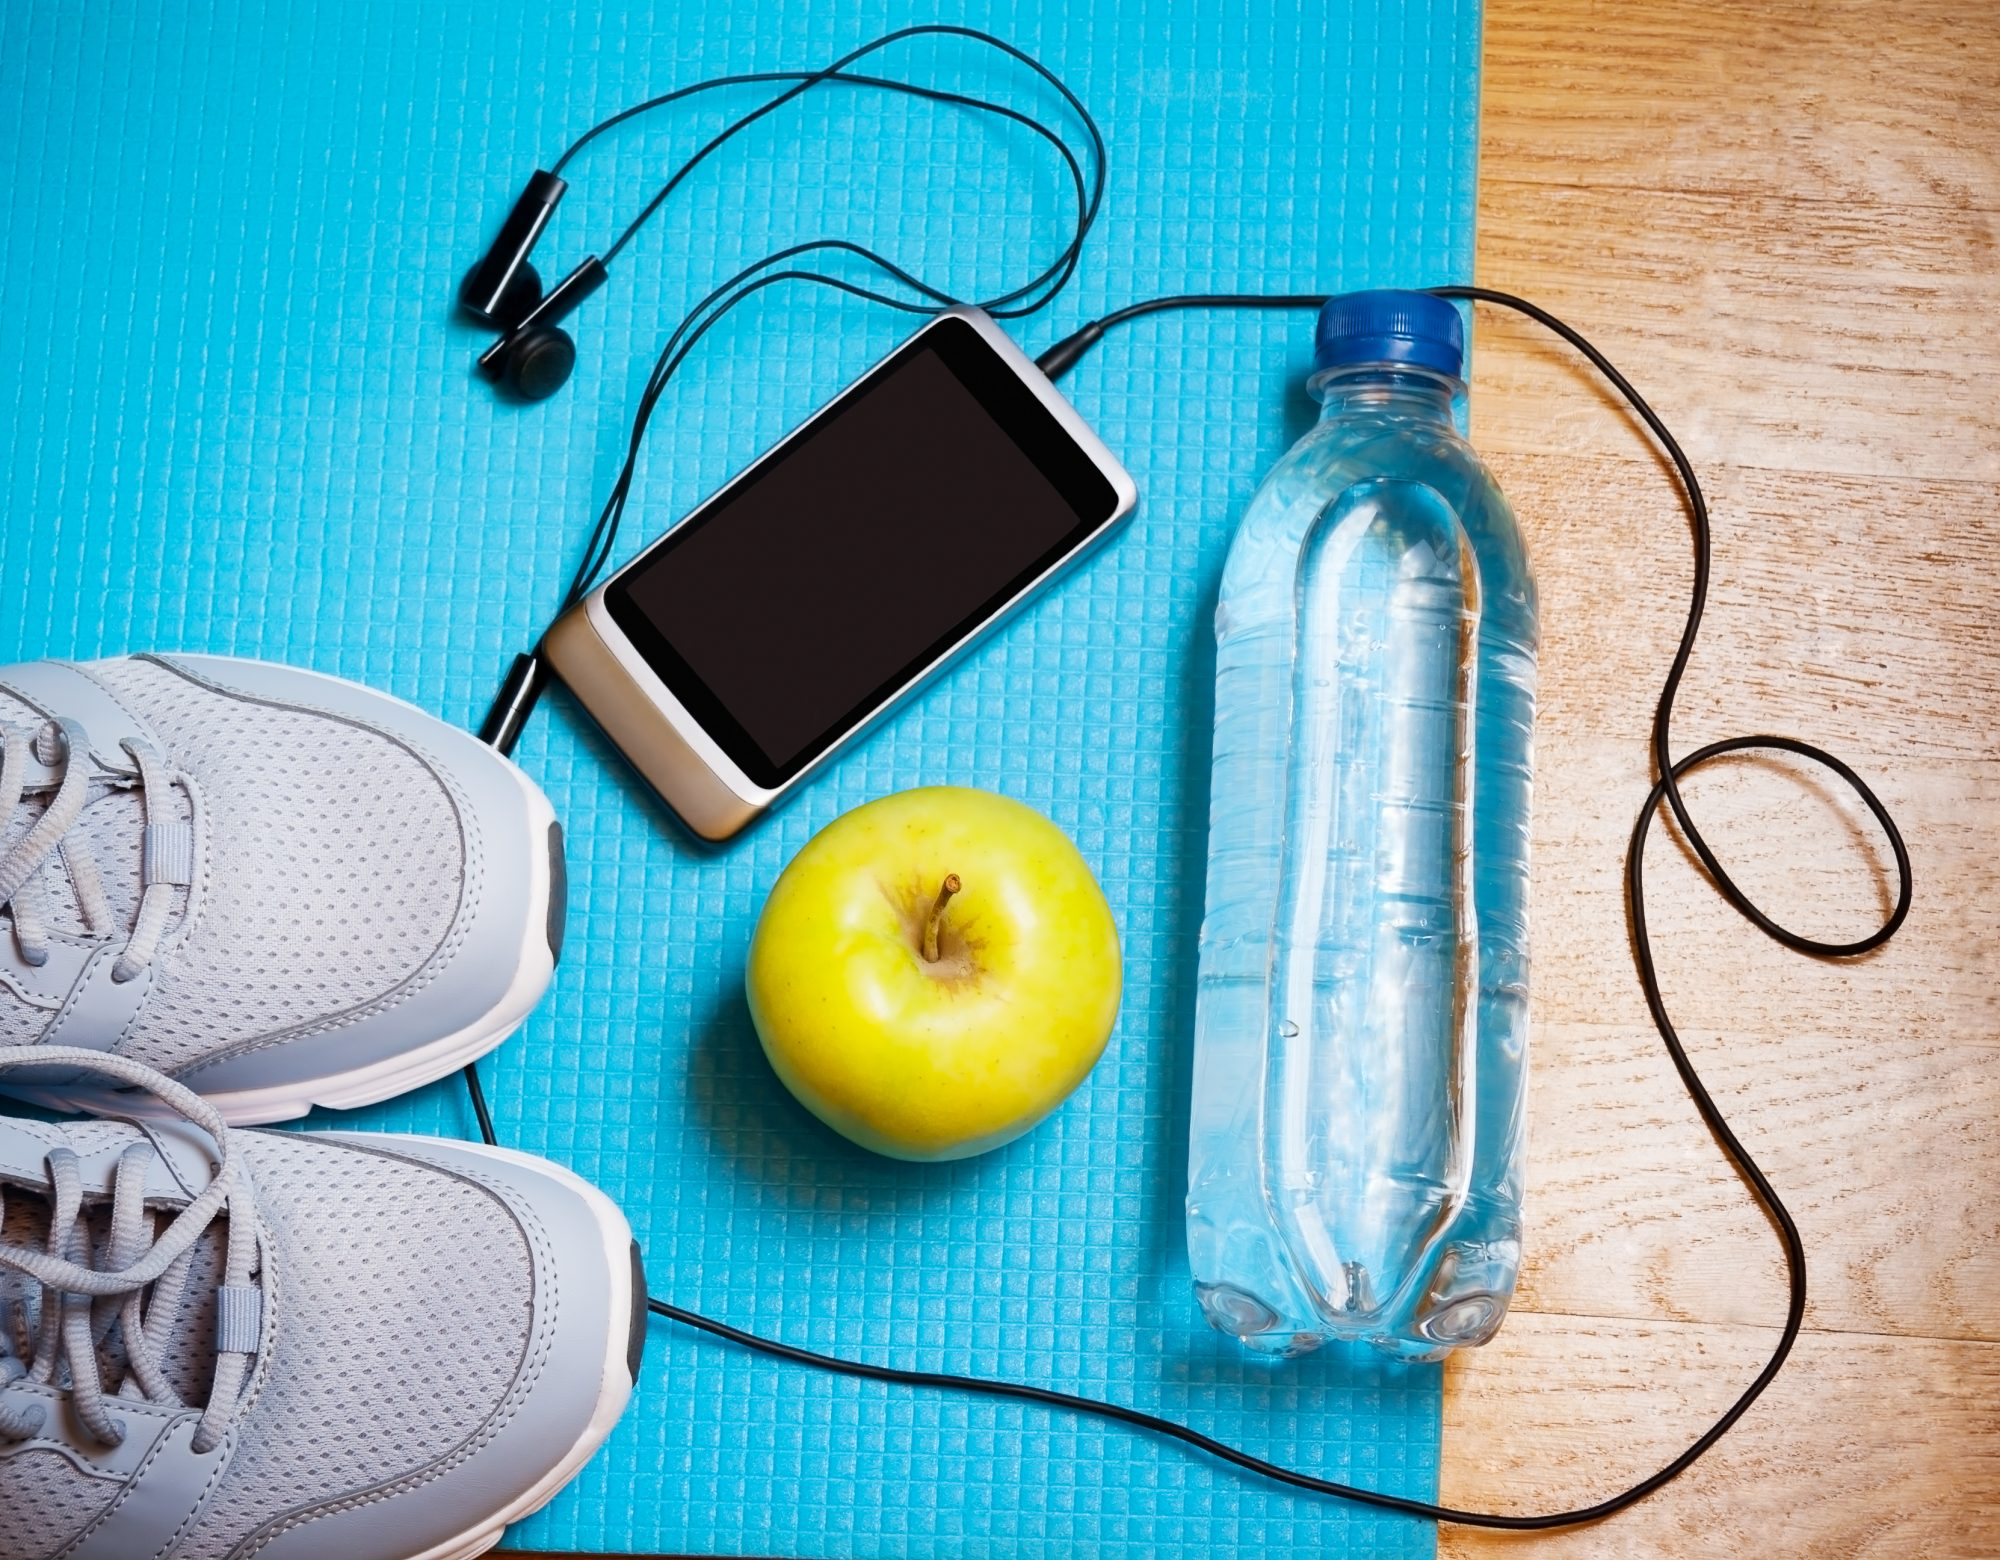 Best Podcasts to Listen to While Going for a Walk: sneakers, phone, headphones